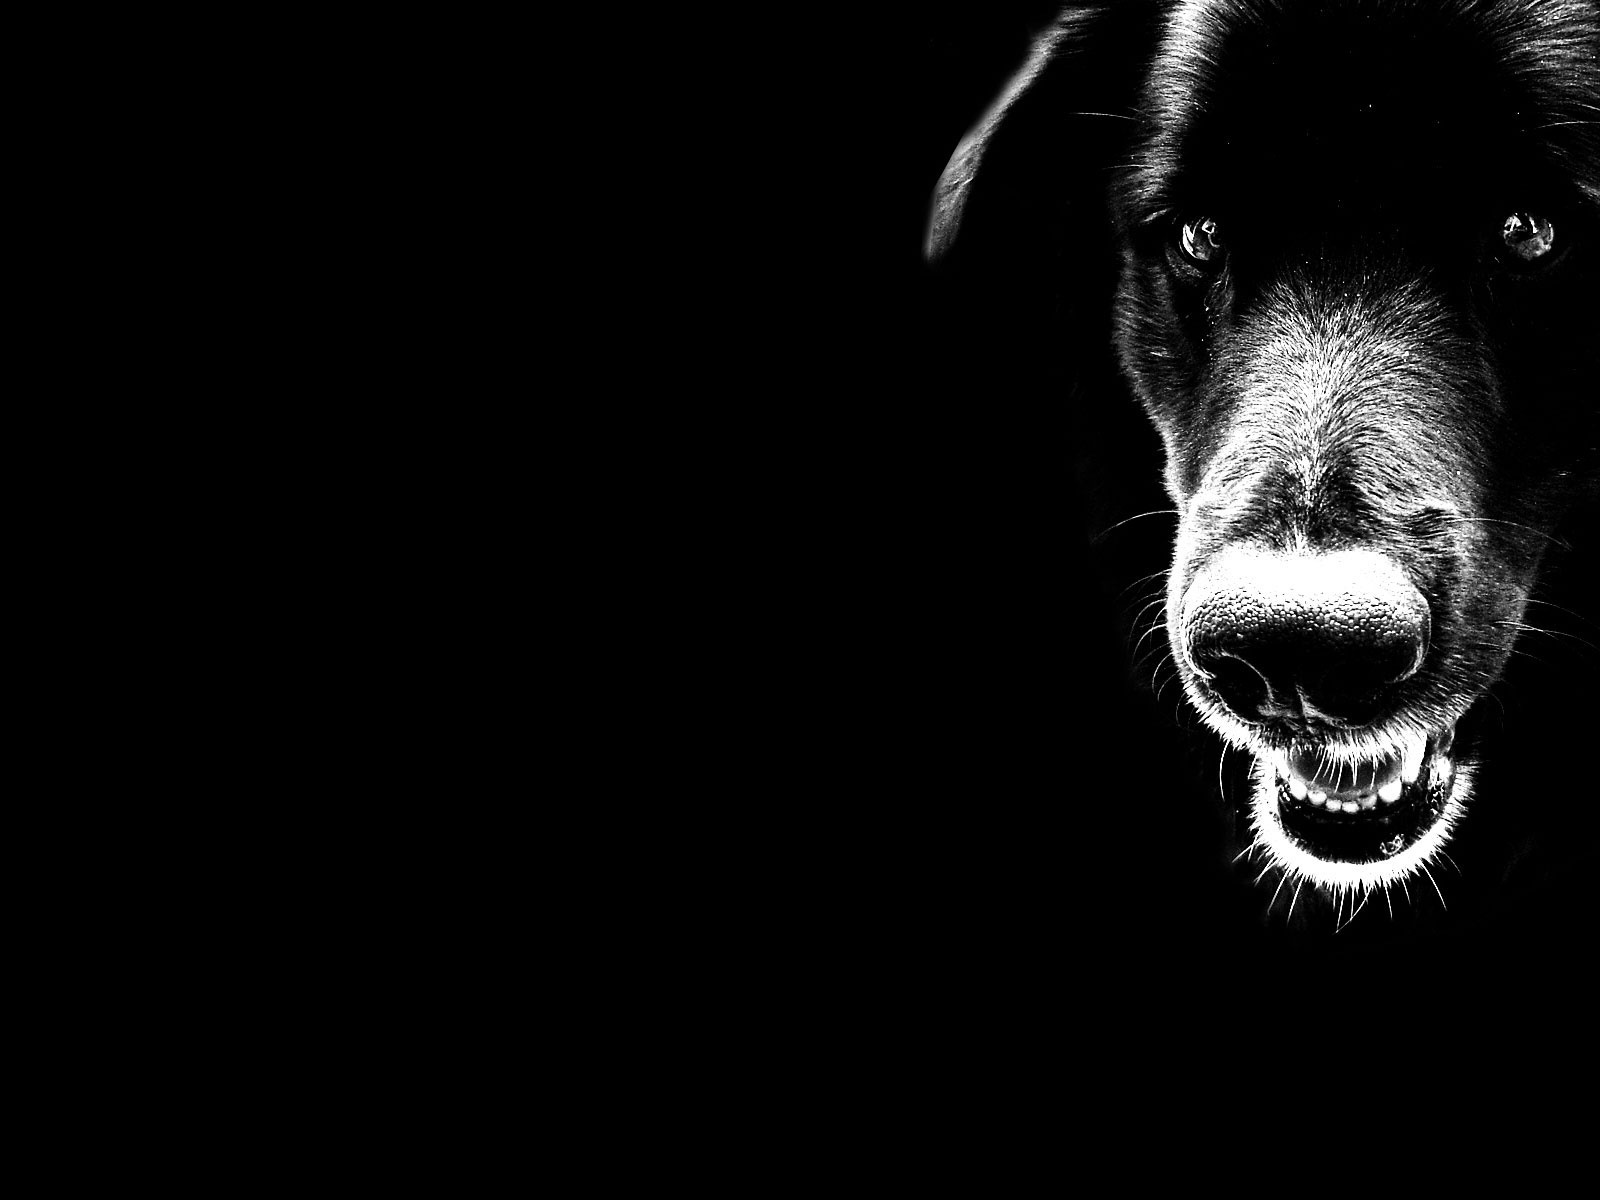 click to free download the wallpaper--Cute Animals Image, Dog in Black Tones, Shinning Eyes, It Shall Strike a Deep Impression 1600X1200 free wallpaper download